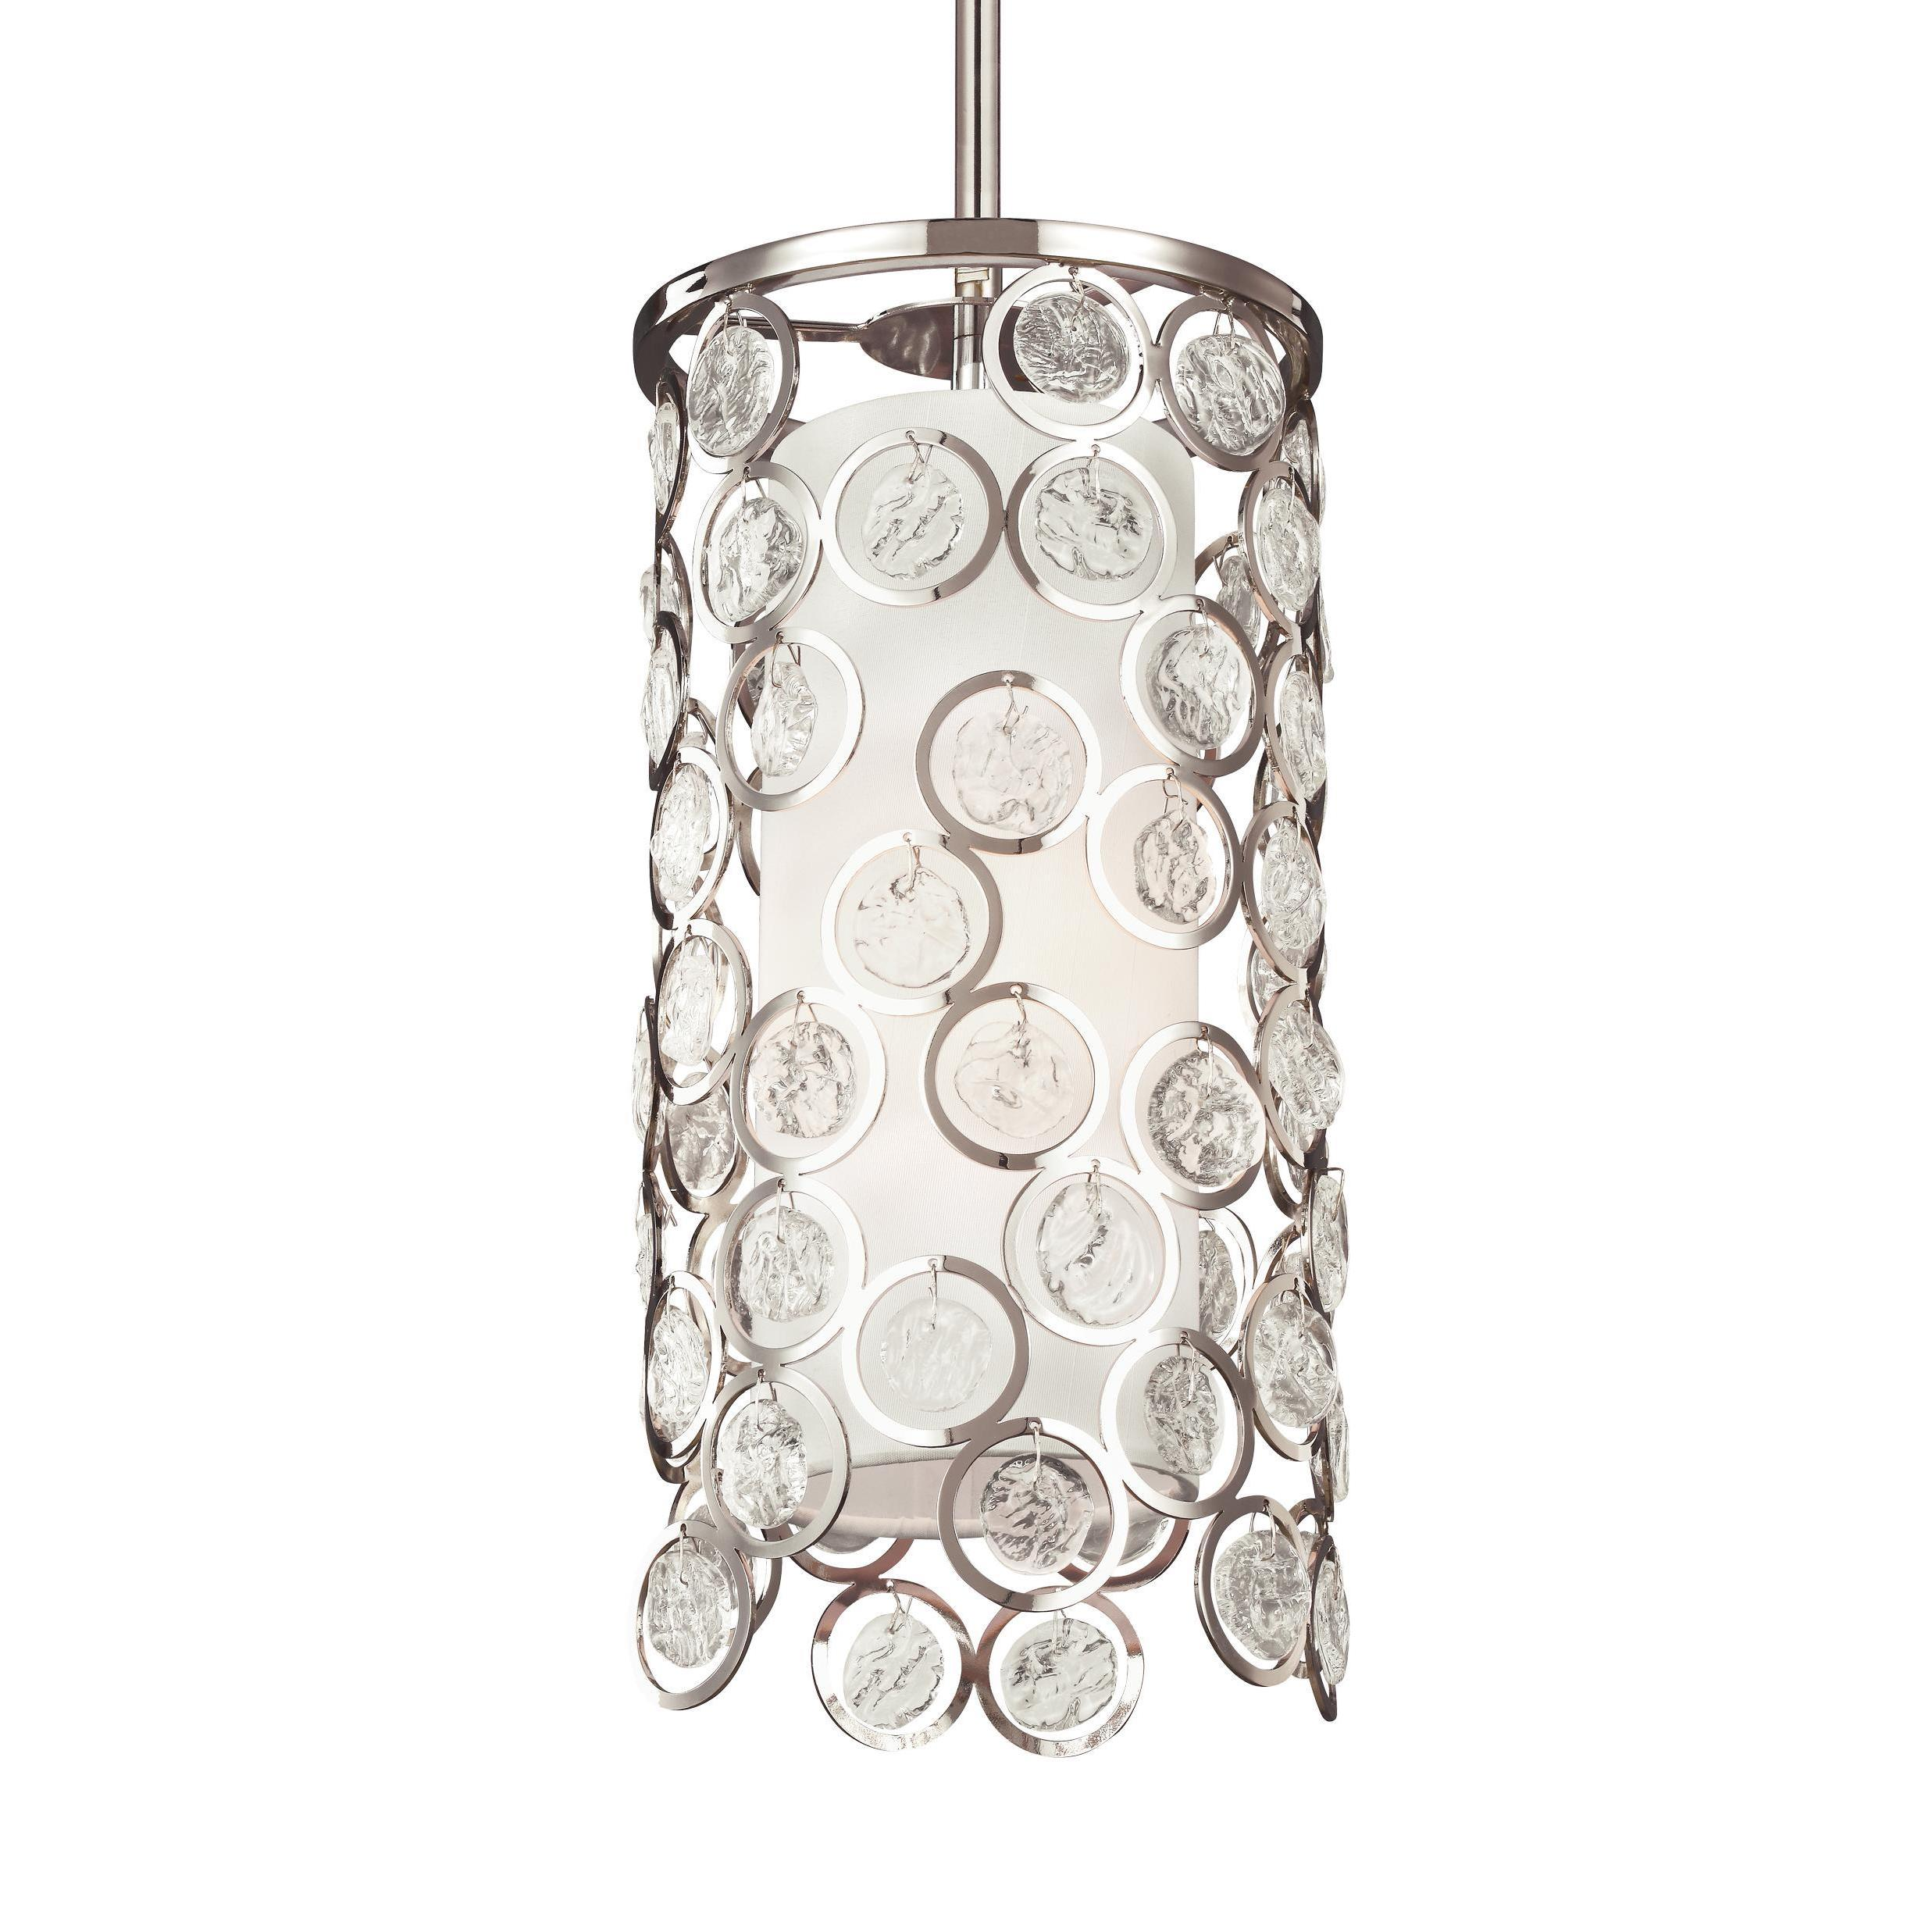 Feiss Lexi 1 Light Polished Nickel Pendant